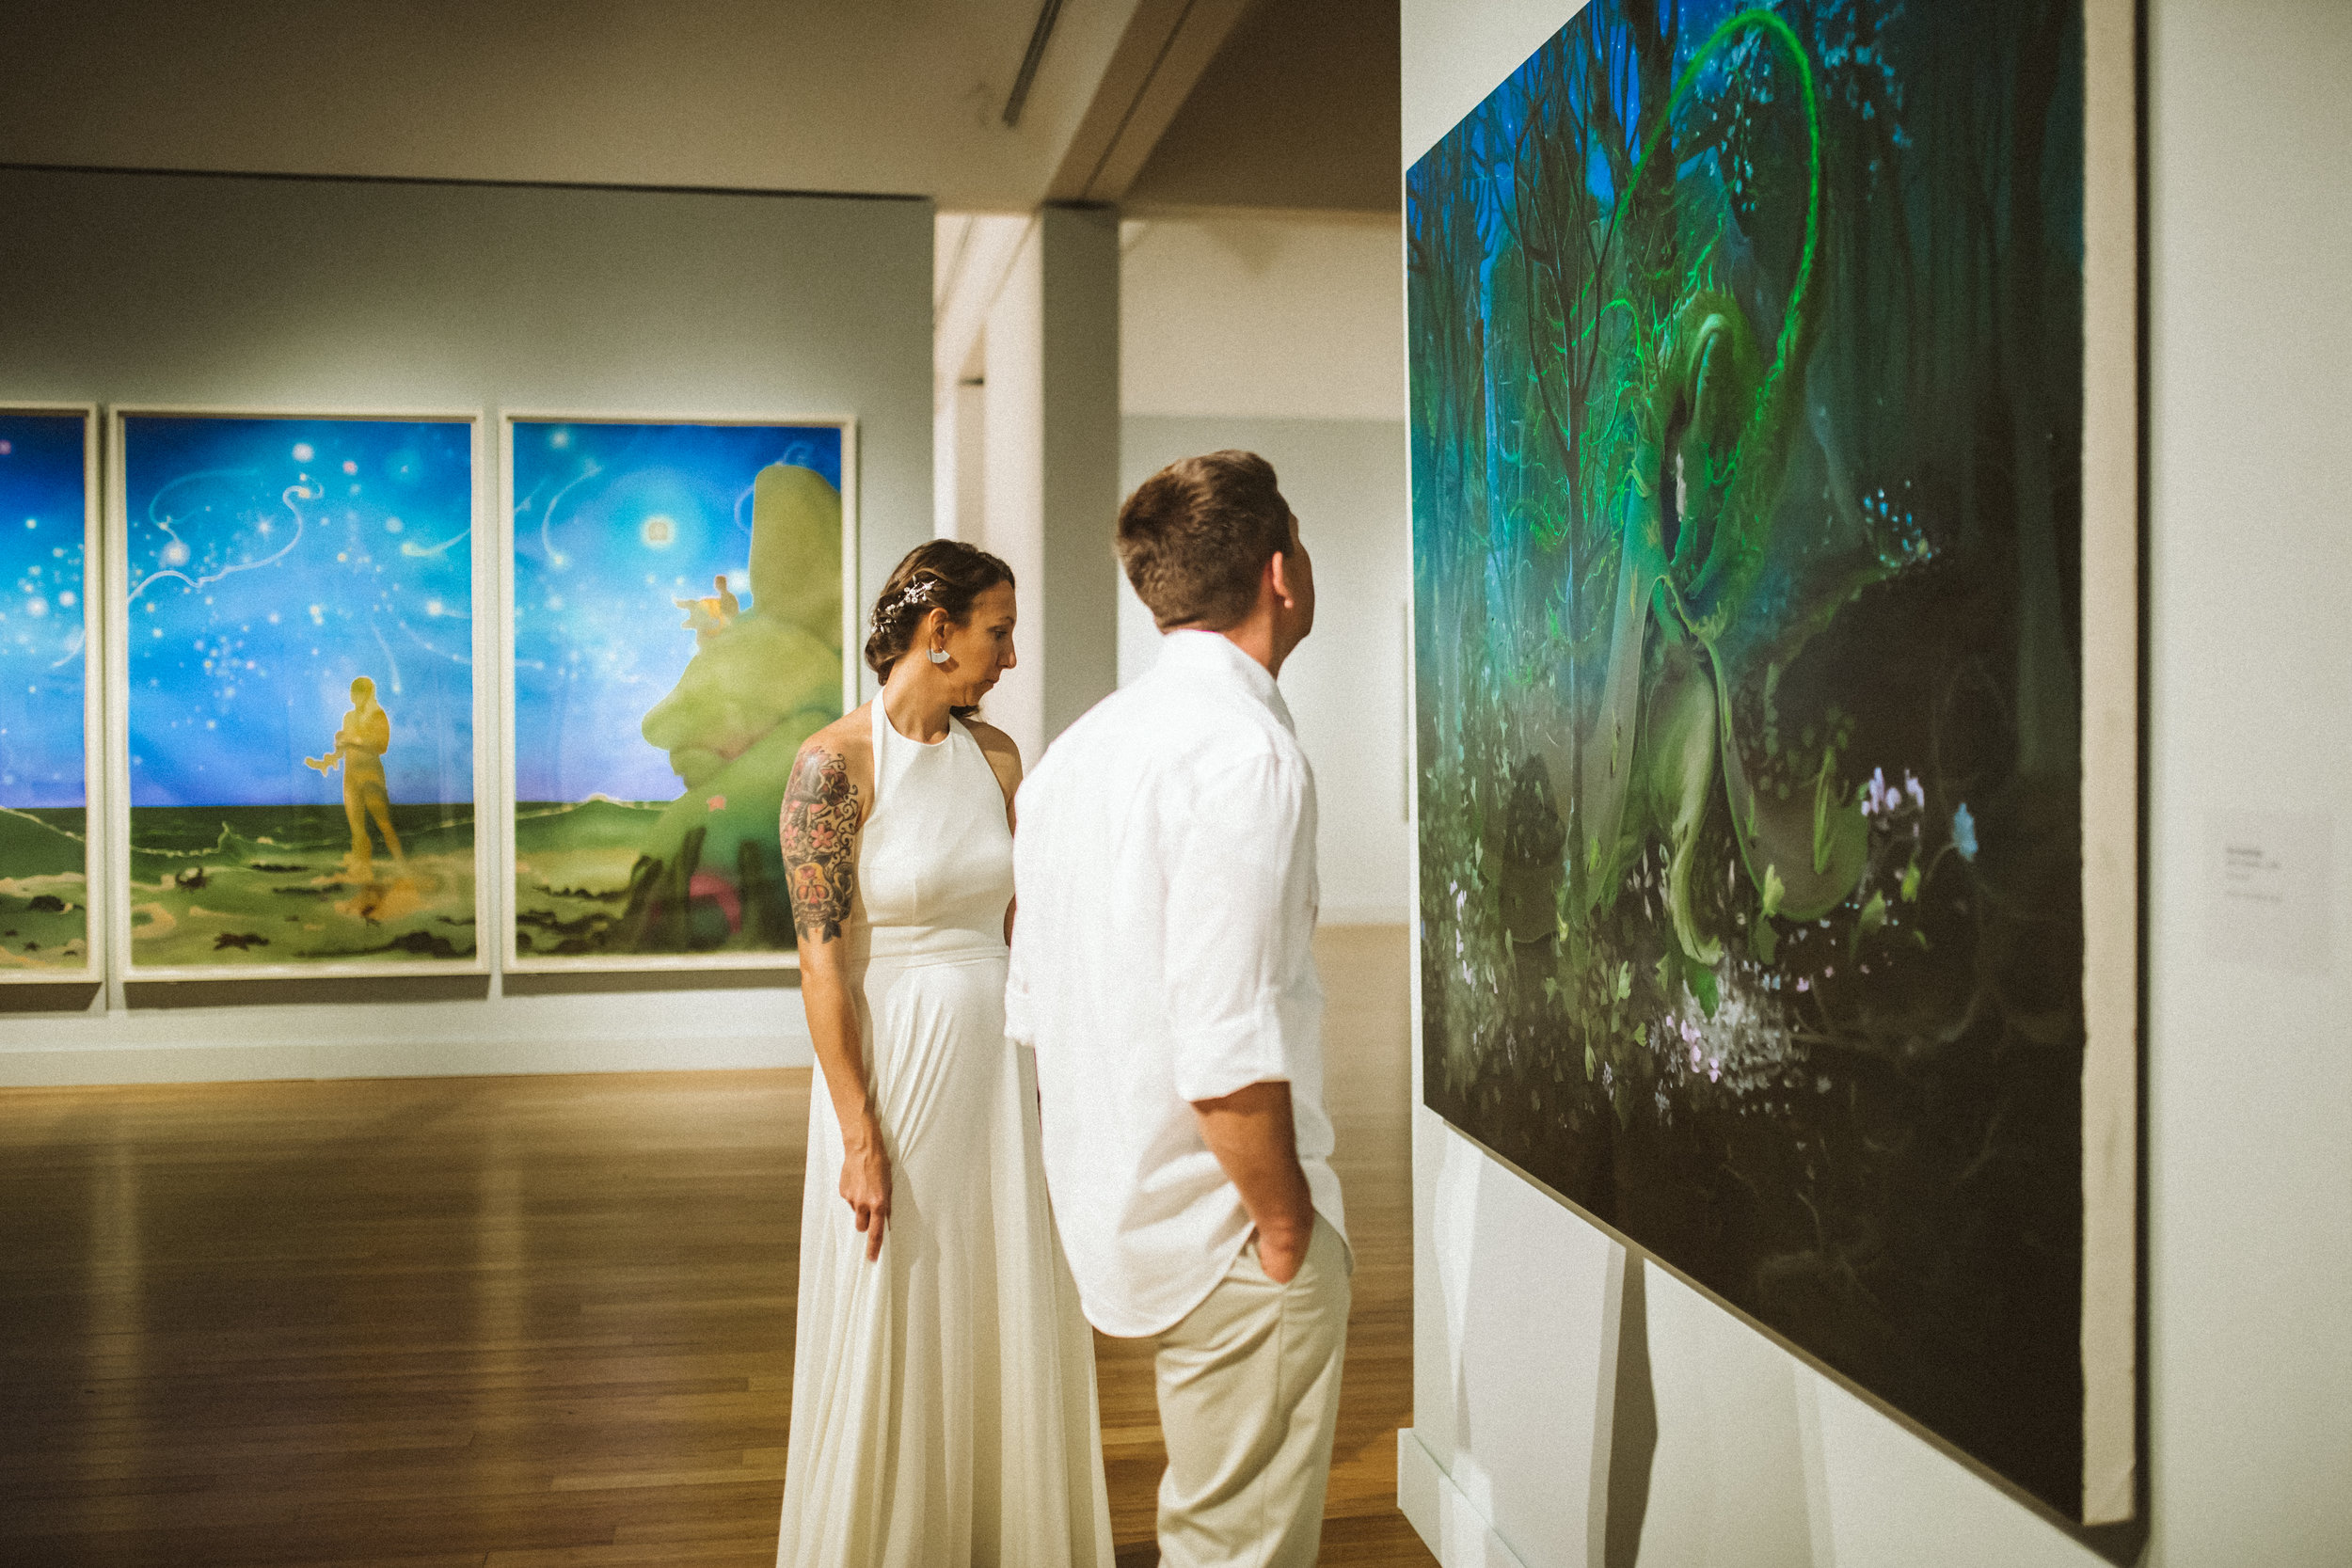 susanandkennethdorswitt.virginiaMOCA.virginiabeach.virginia.rebeccaburtphotography.art.wedding-179.jpg